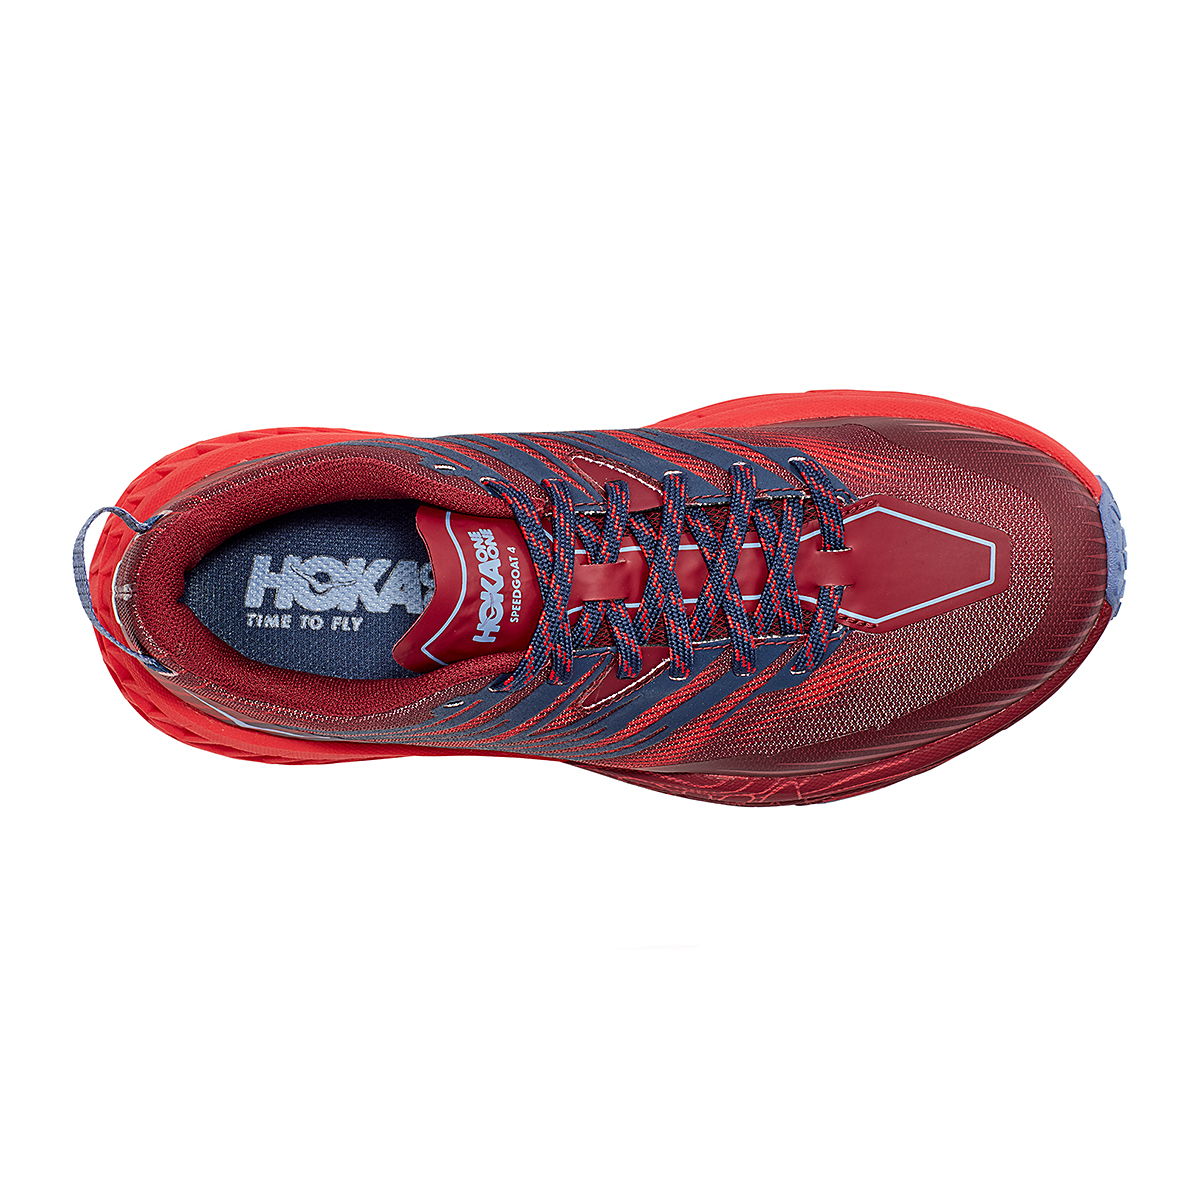 Women's Hoka One One Speedgoat 4 Trail Running Shoe - Color: Cordovan/High Risk Red - Size: 5 - Width: Regular, Cordovan/High Risk Red, large, image 7